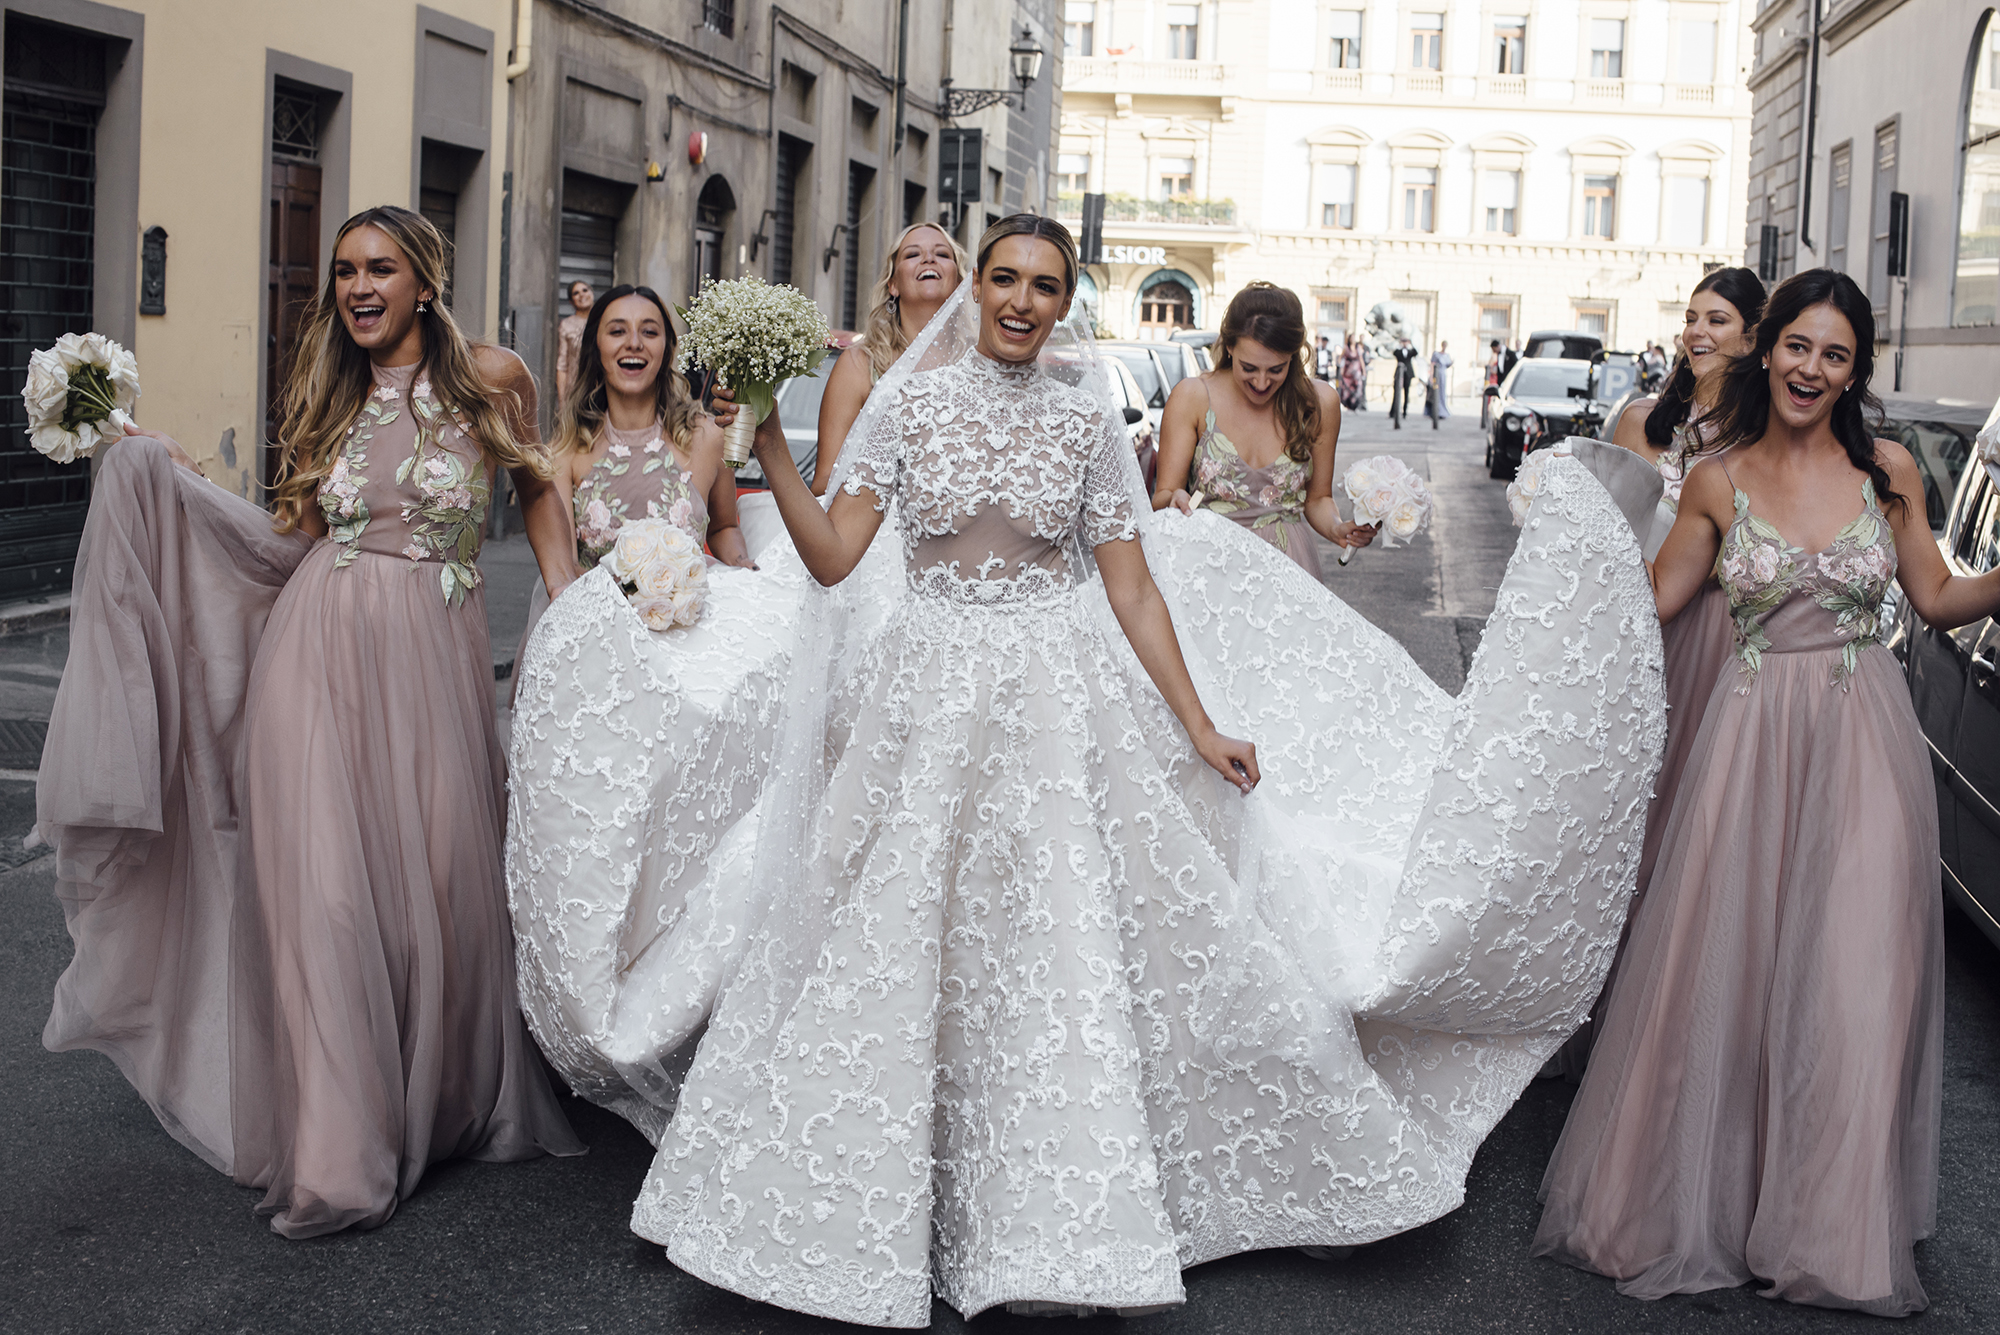 Awesome A Lot Our Carnival Dancers I Were Welcomed Bride Our Wedding Florence Part Camila Carril Dinner We Had A Few Attractions During Anthony Dancing bridal shower The Wedding Bride